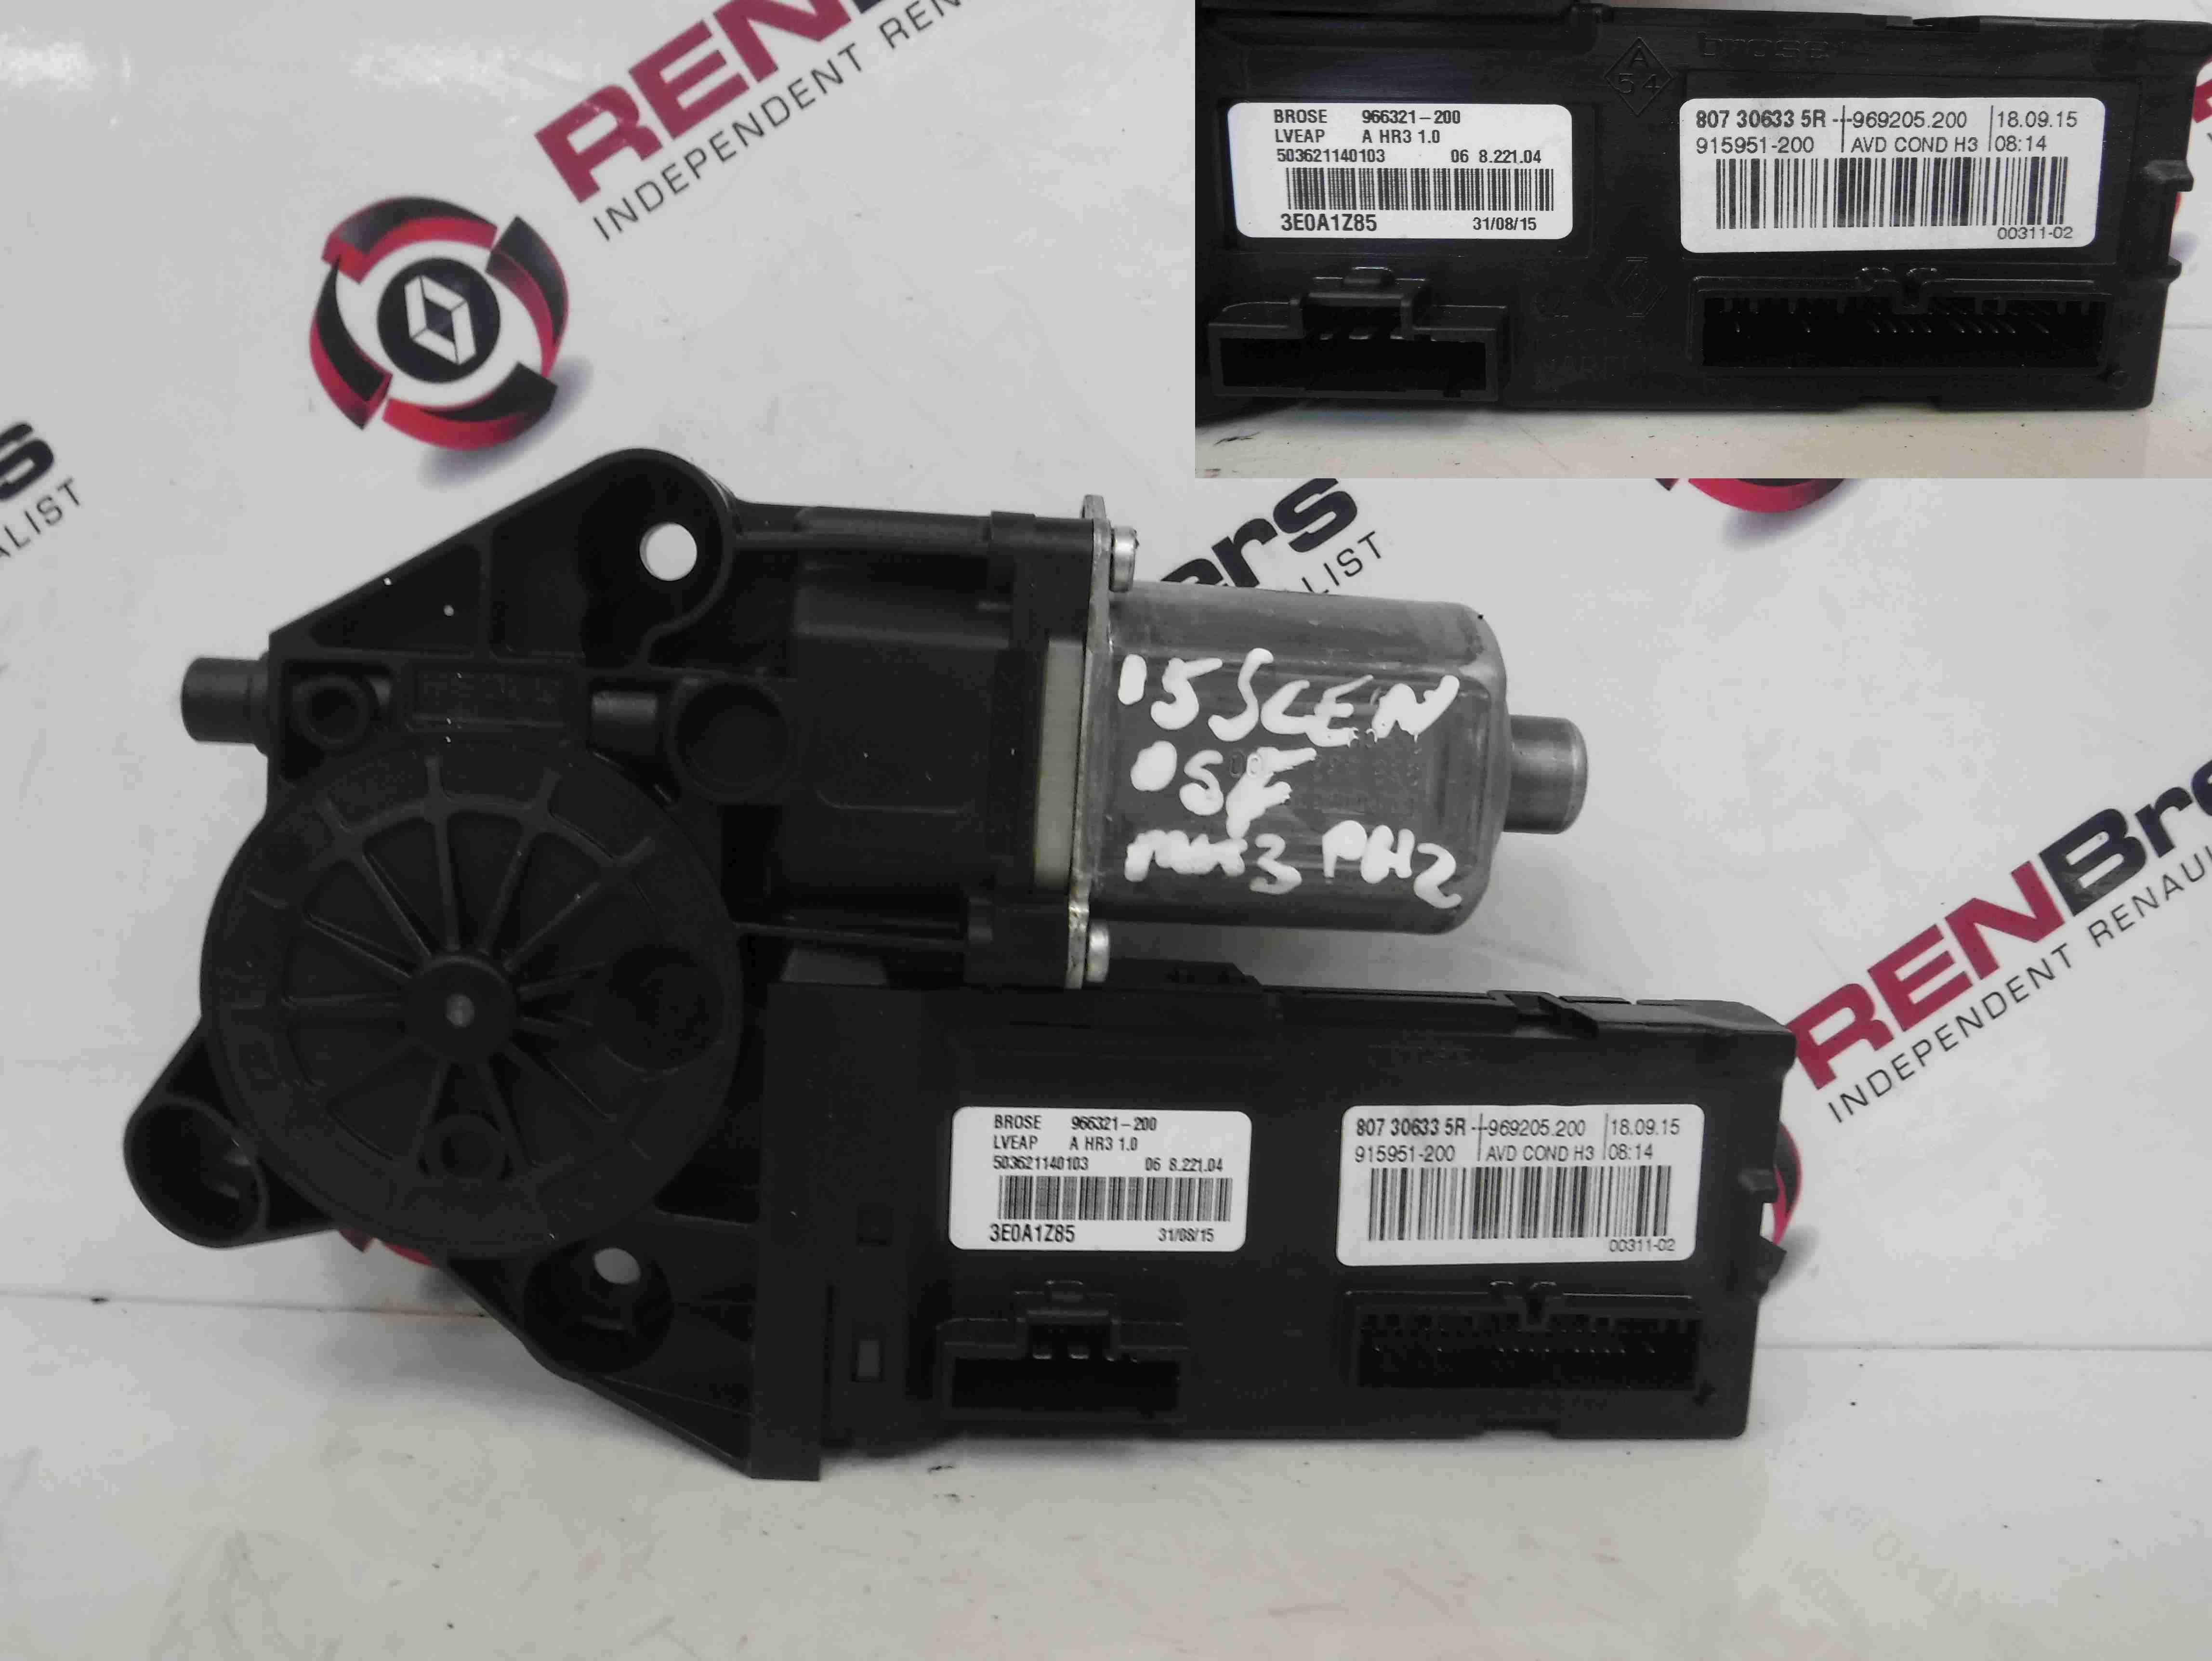 Renault Scenic MK3 2009-2016 Drivers OSF Front Window Motor 807306335R